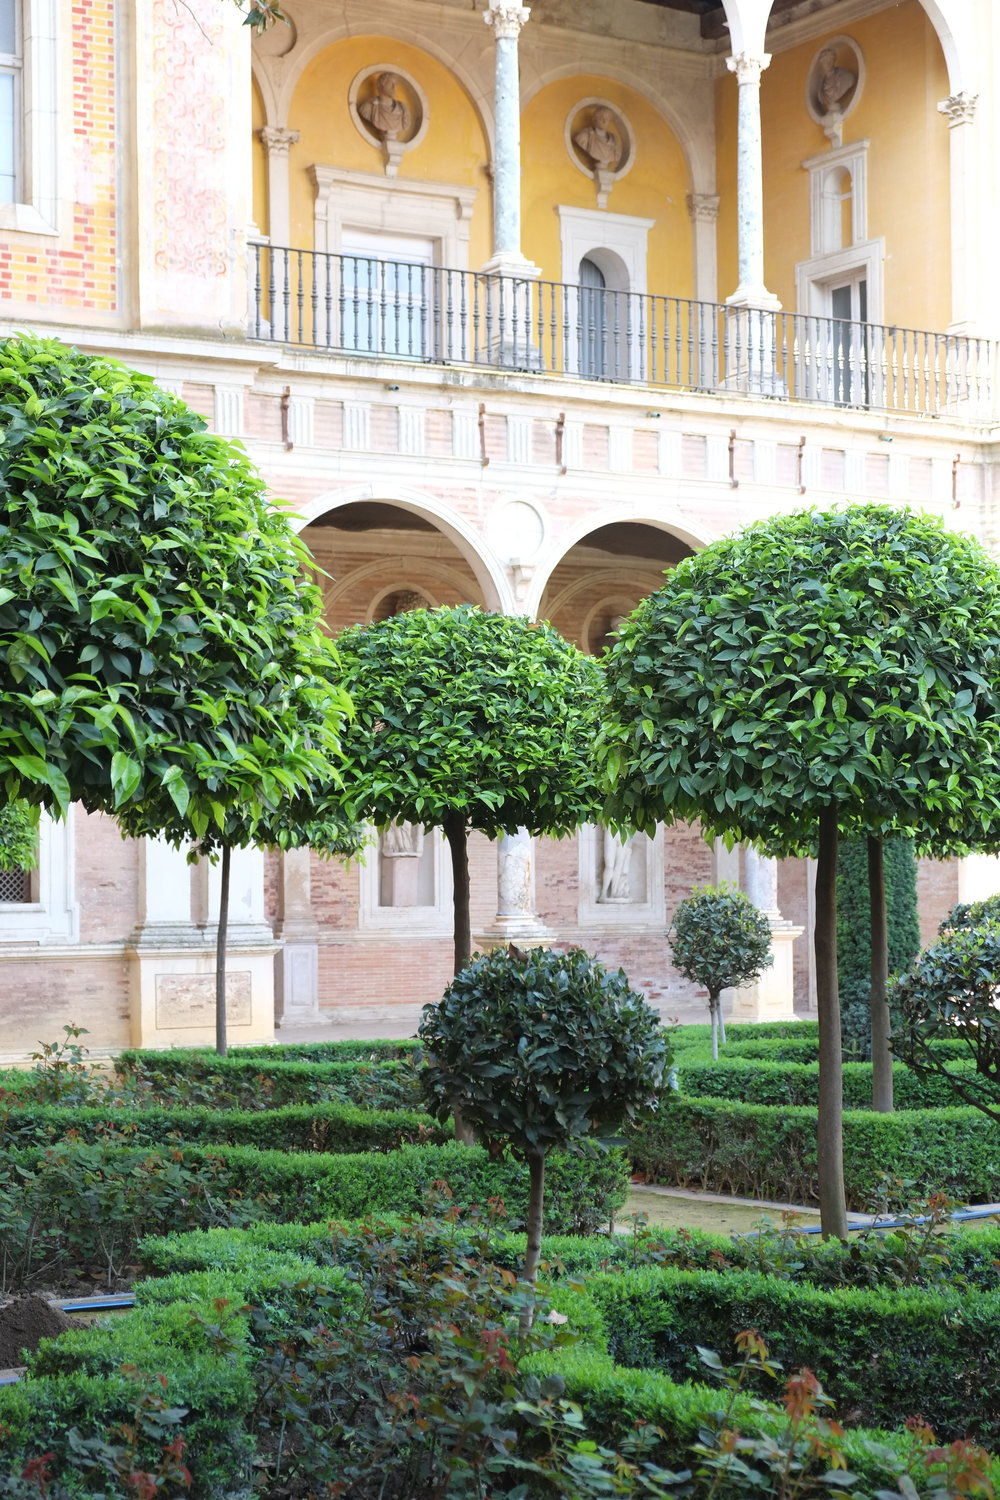 Gardens at Casa de Pilatos